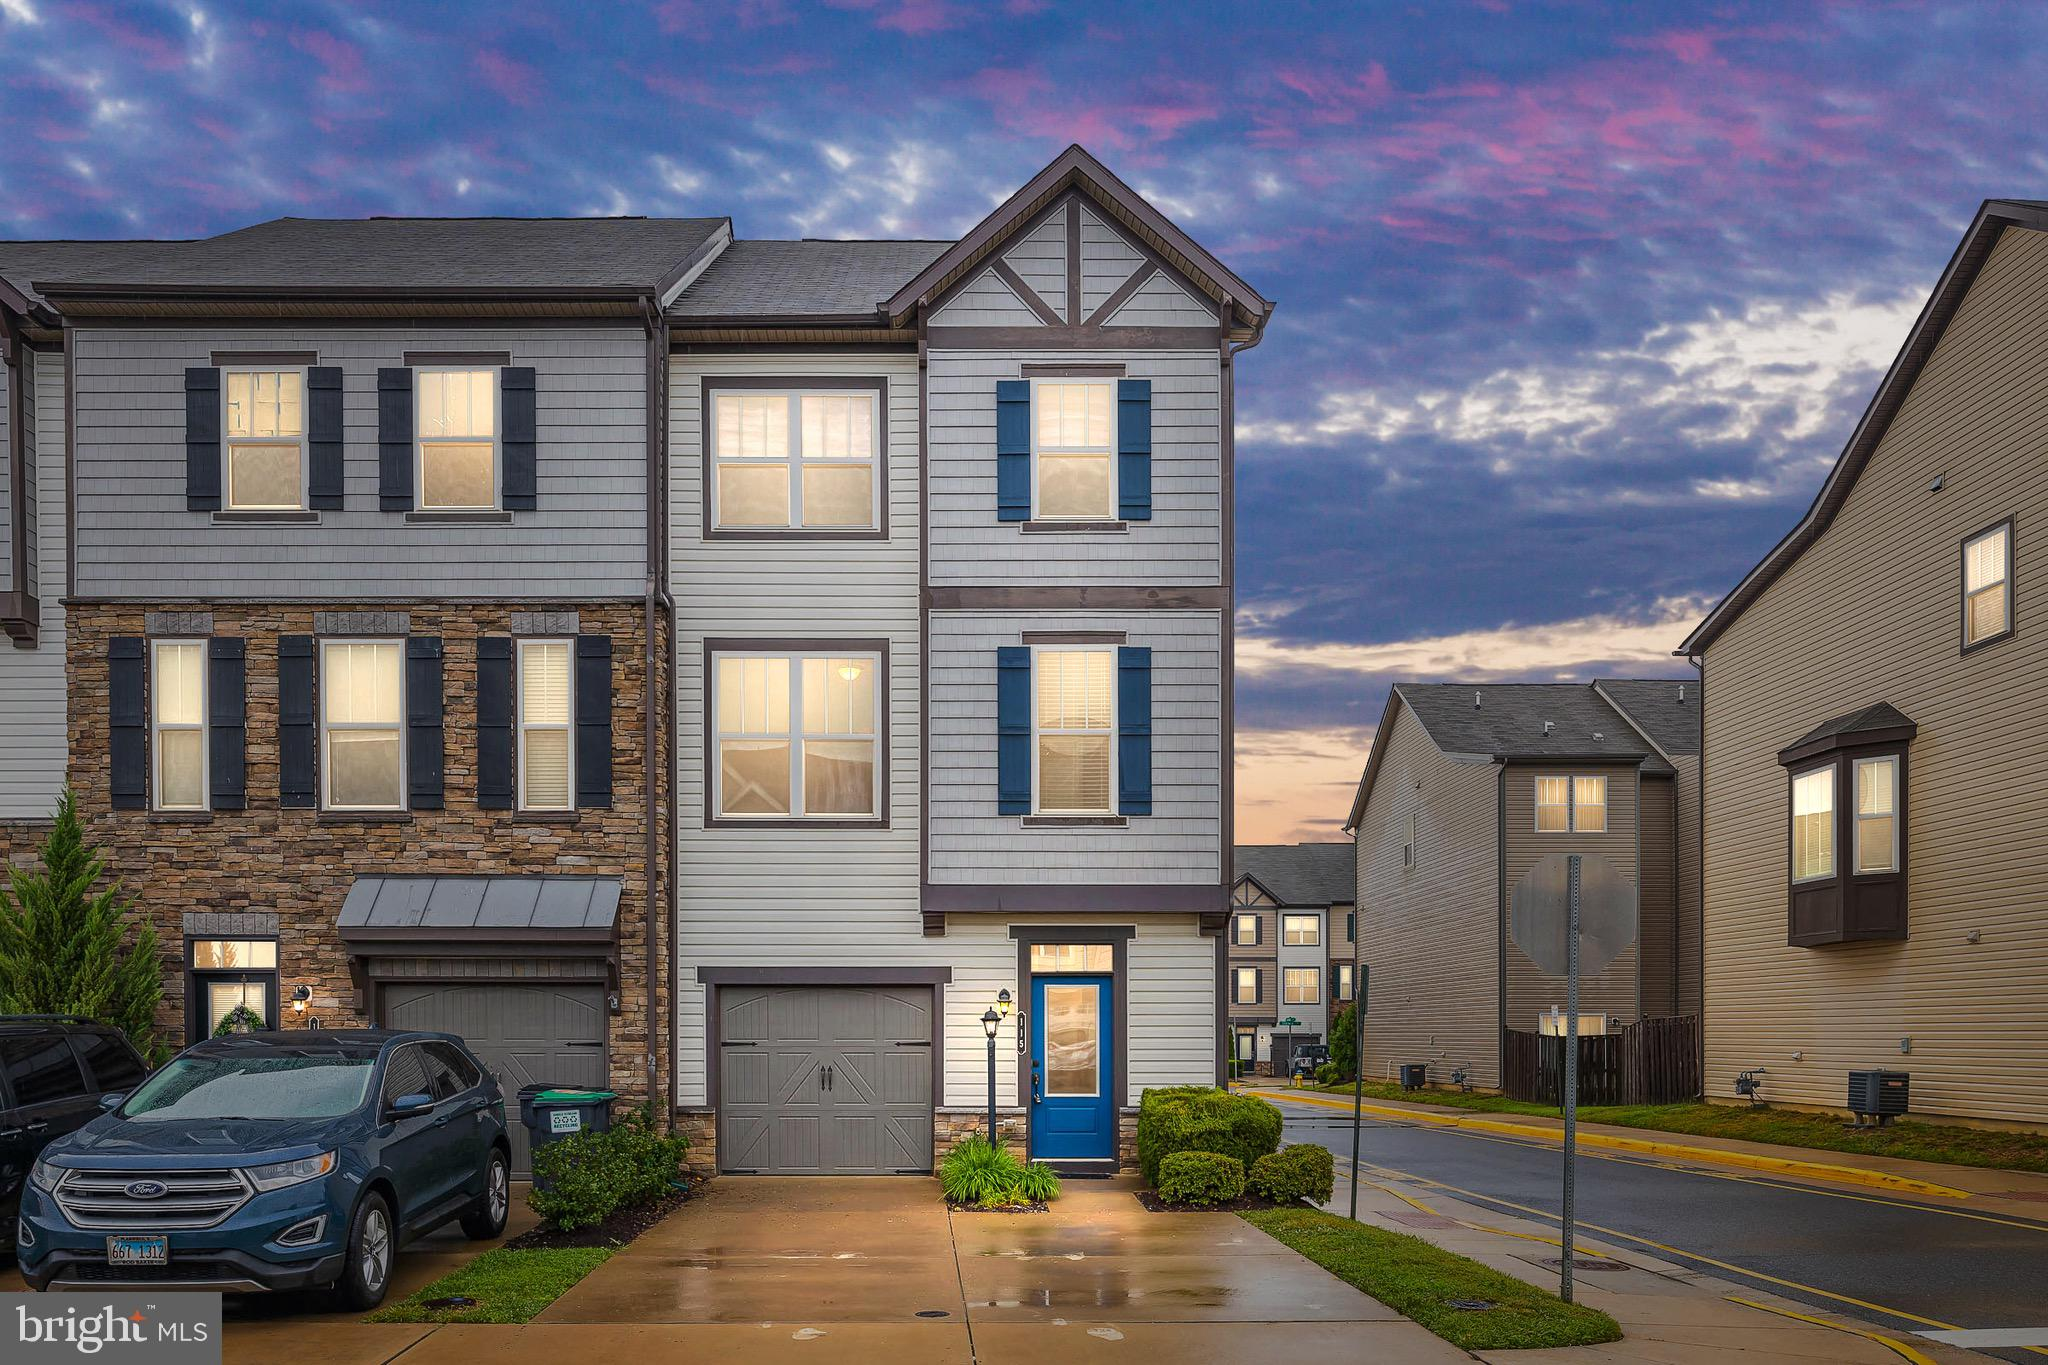 Like new end-unit townhome in sought after Colonial Forge! Three beautifully finished levels to spread out on. Carpet is NEW throughout entire house. Main level features large option kitchen with separate dining area and stainless steel appliances. Enjoy all the natural light the morning room off the kitchen has to offer with access to the wraparound deck. Massive living room with elongated windows, wood feature wall, and a half bathroom finish off the level. Upstairs you'll find the large master suite with private sitting area, en suite bathroom, and large walk-in closet. Two nicely sized additional bedrooms and another full bathroom finish the top level. On the lower level you'll see the finished recreation room and bump out, perfect for a home gym, man cave, or office space. Another half bathroom and laundry are also on this level and the washer and dryer convey! Walkout access to the fully fenced backyard with gate to parking spaces behind the home. Colonial Forge has many amenities to offer to include the community pool, clubhouse, playground, walking trails and more! Zoned and within walking distance to Colonial Forge High School. Easy access to commuting options, restaurants and shopping to include the brand new Publix!